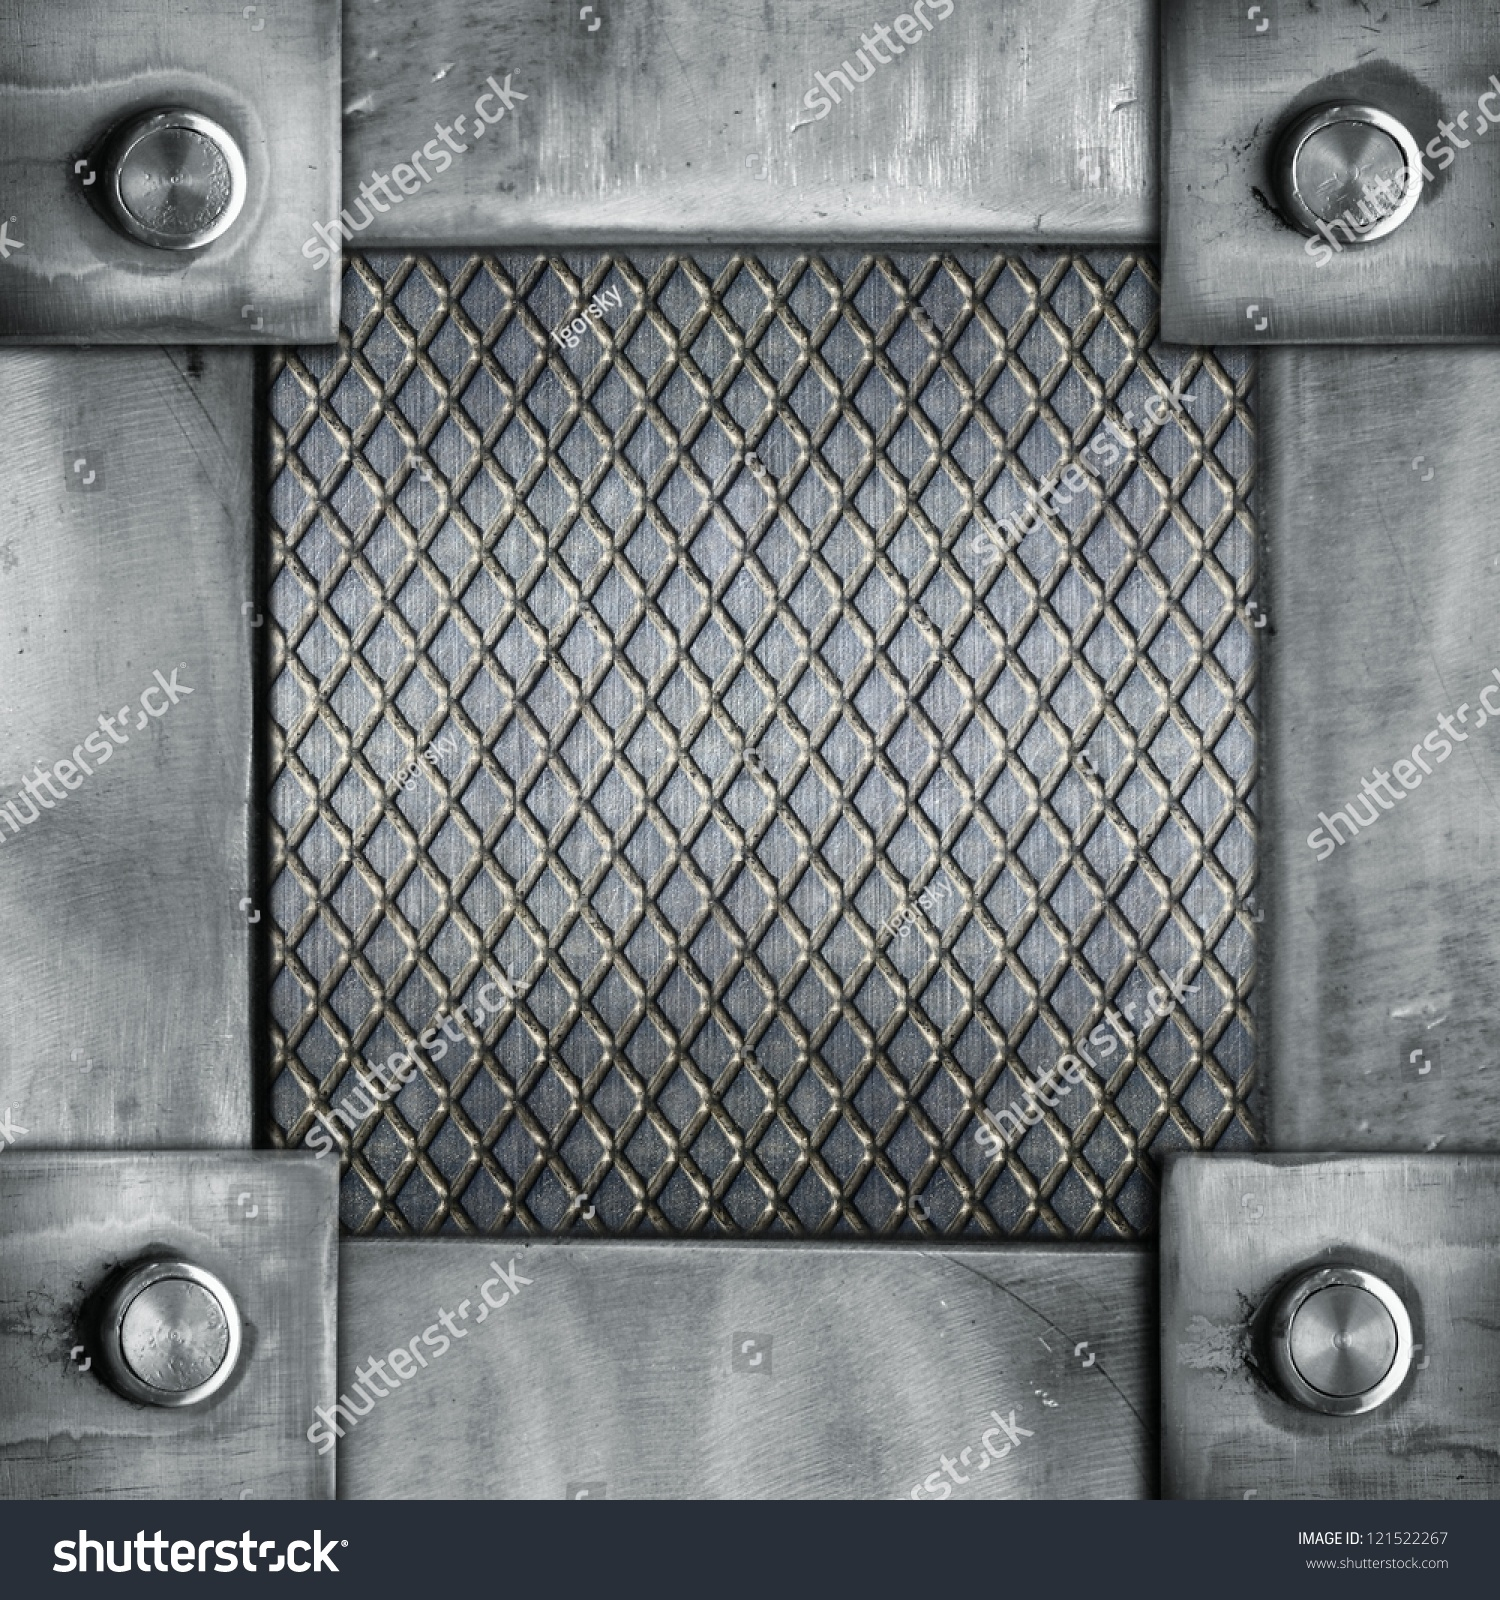 grunge metal frame with rivets abstract industrial background